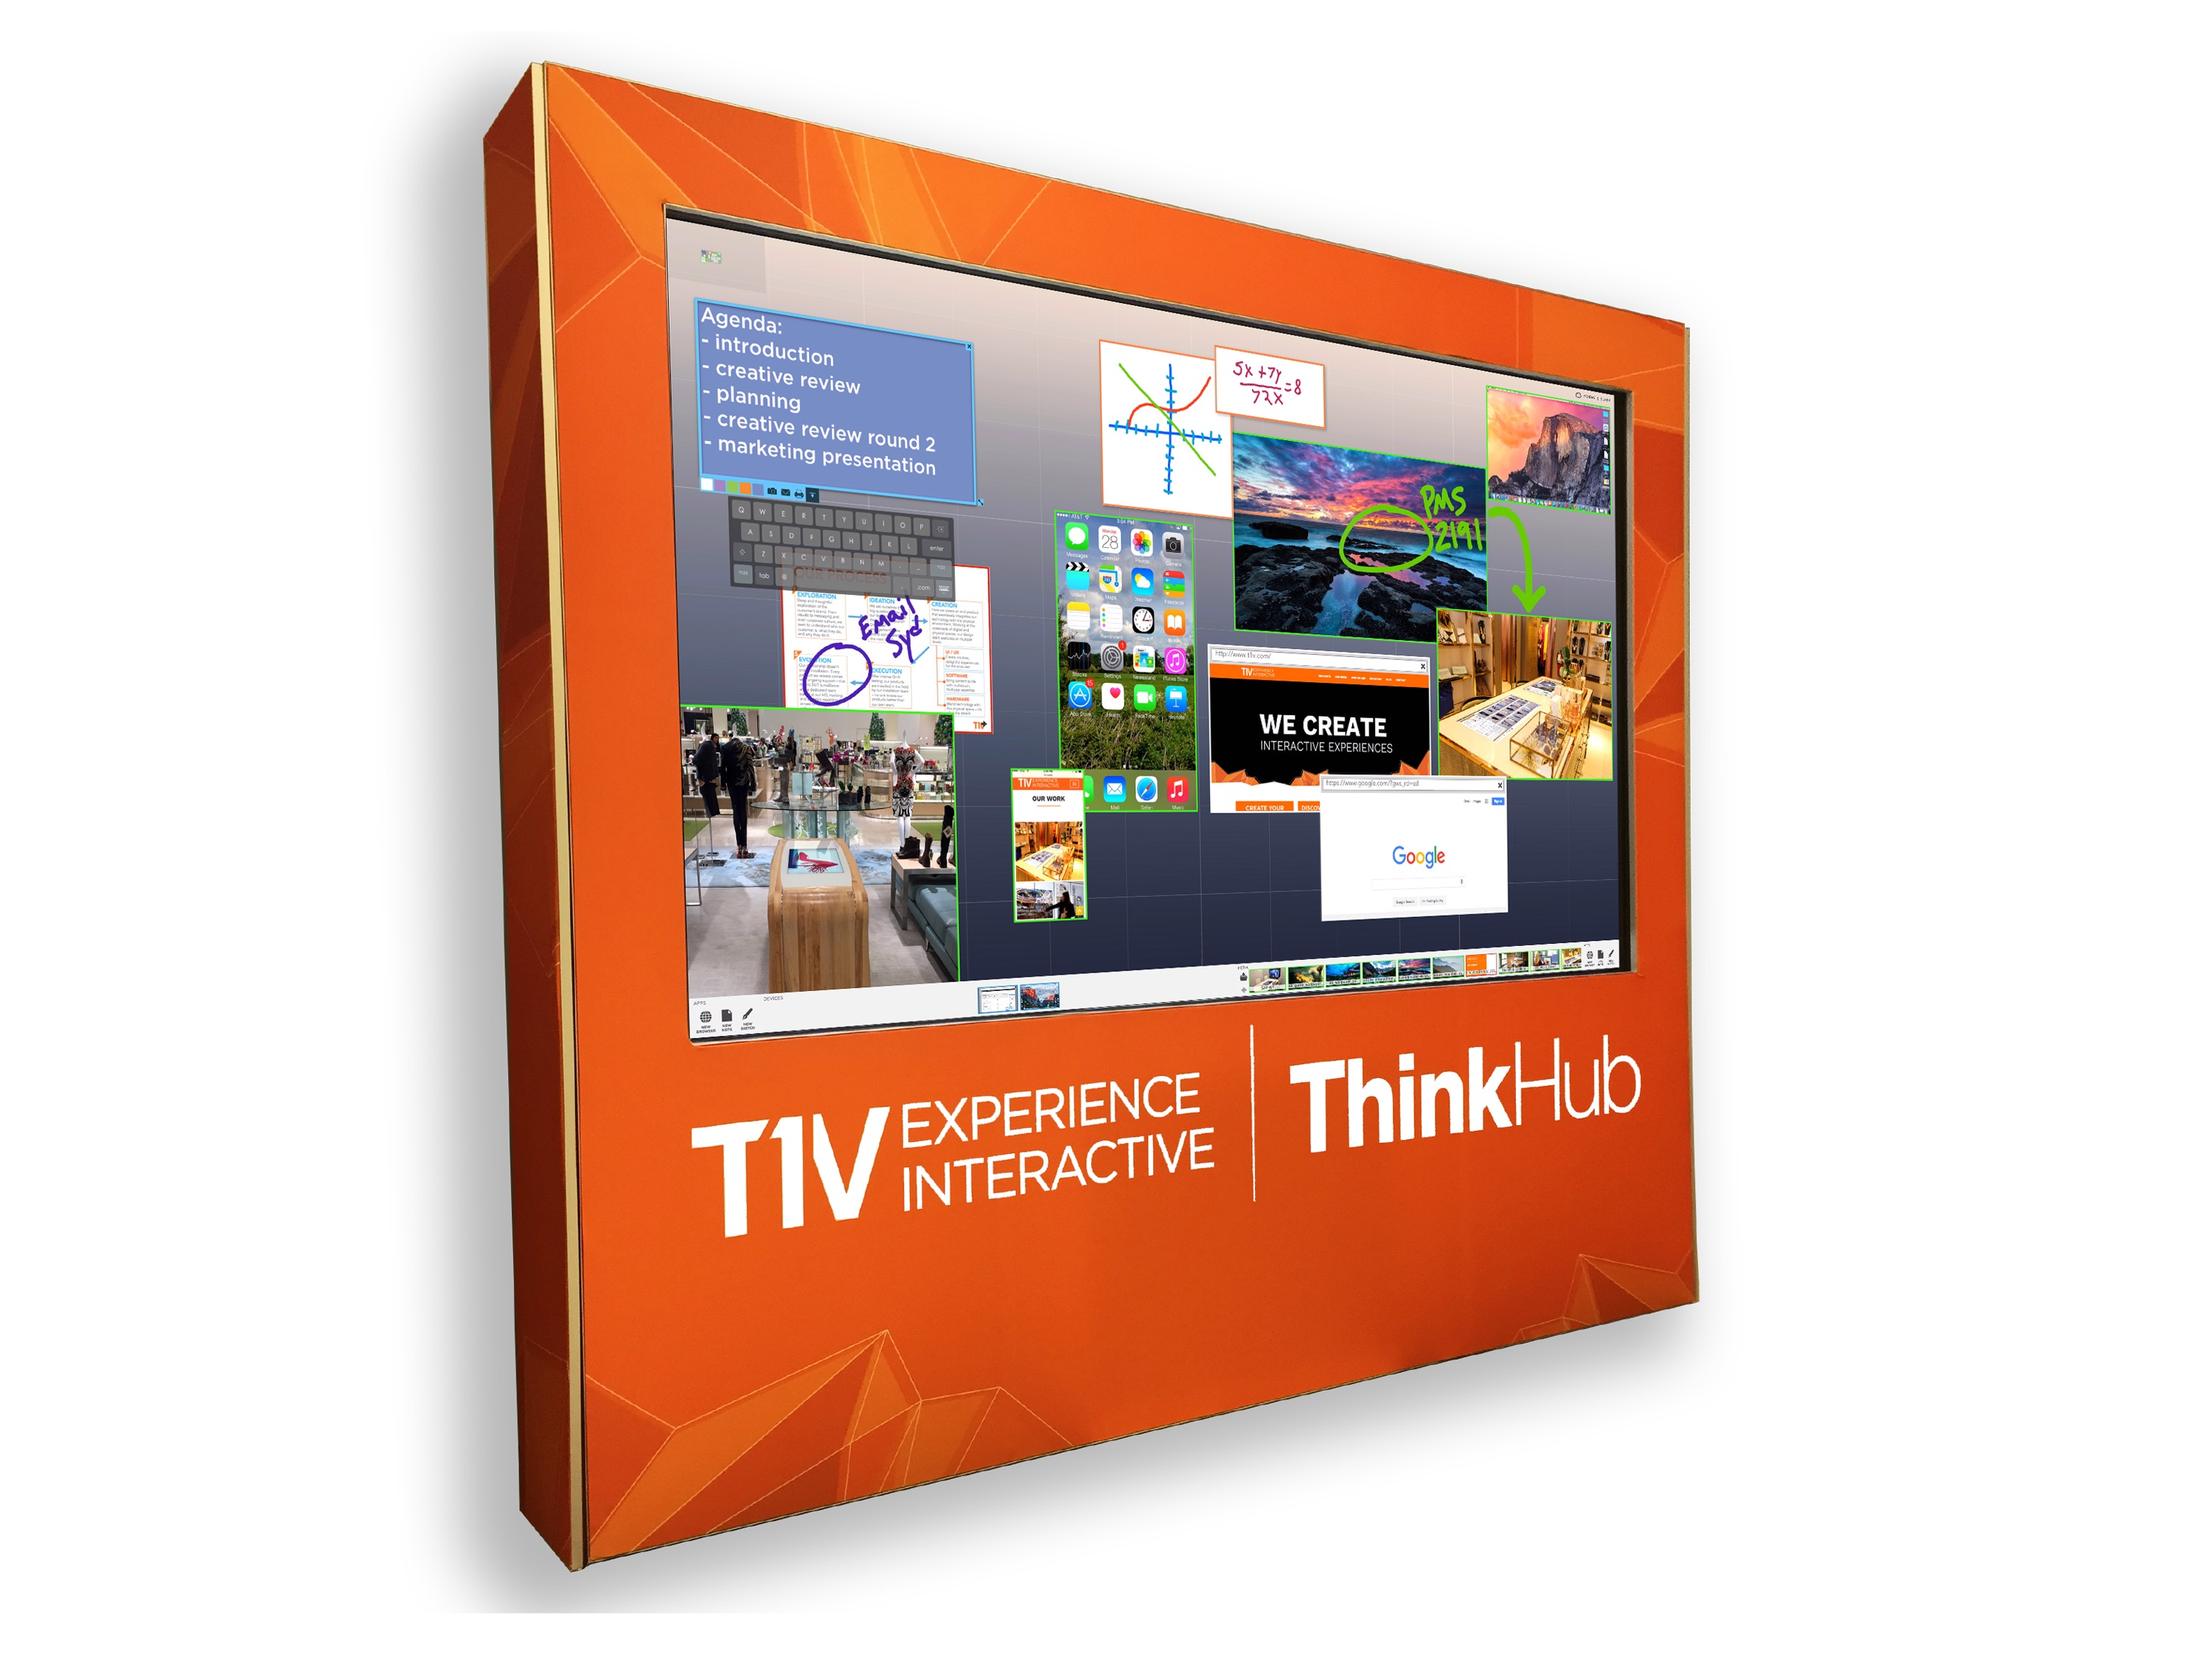 T1V_inTouch_Wall_TI_Tradeshow.jpg